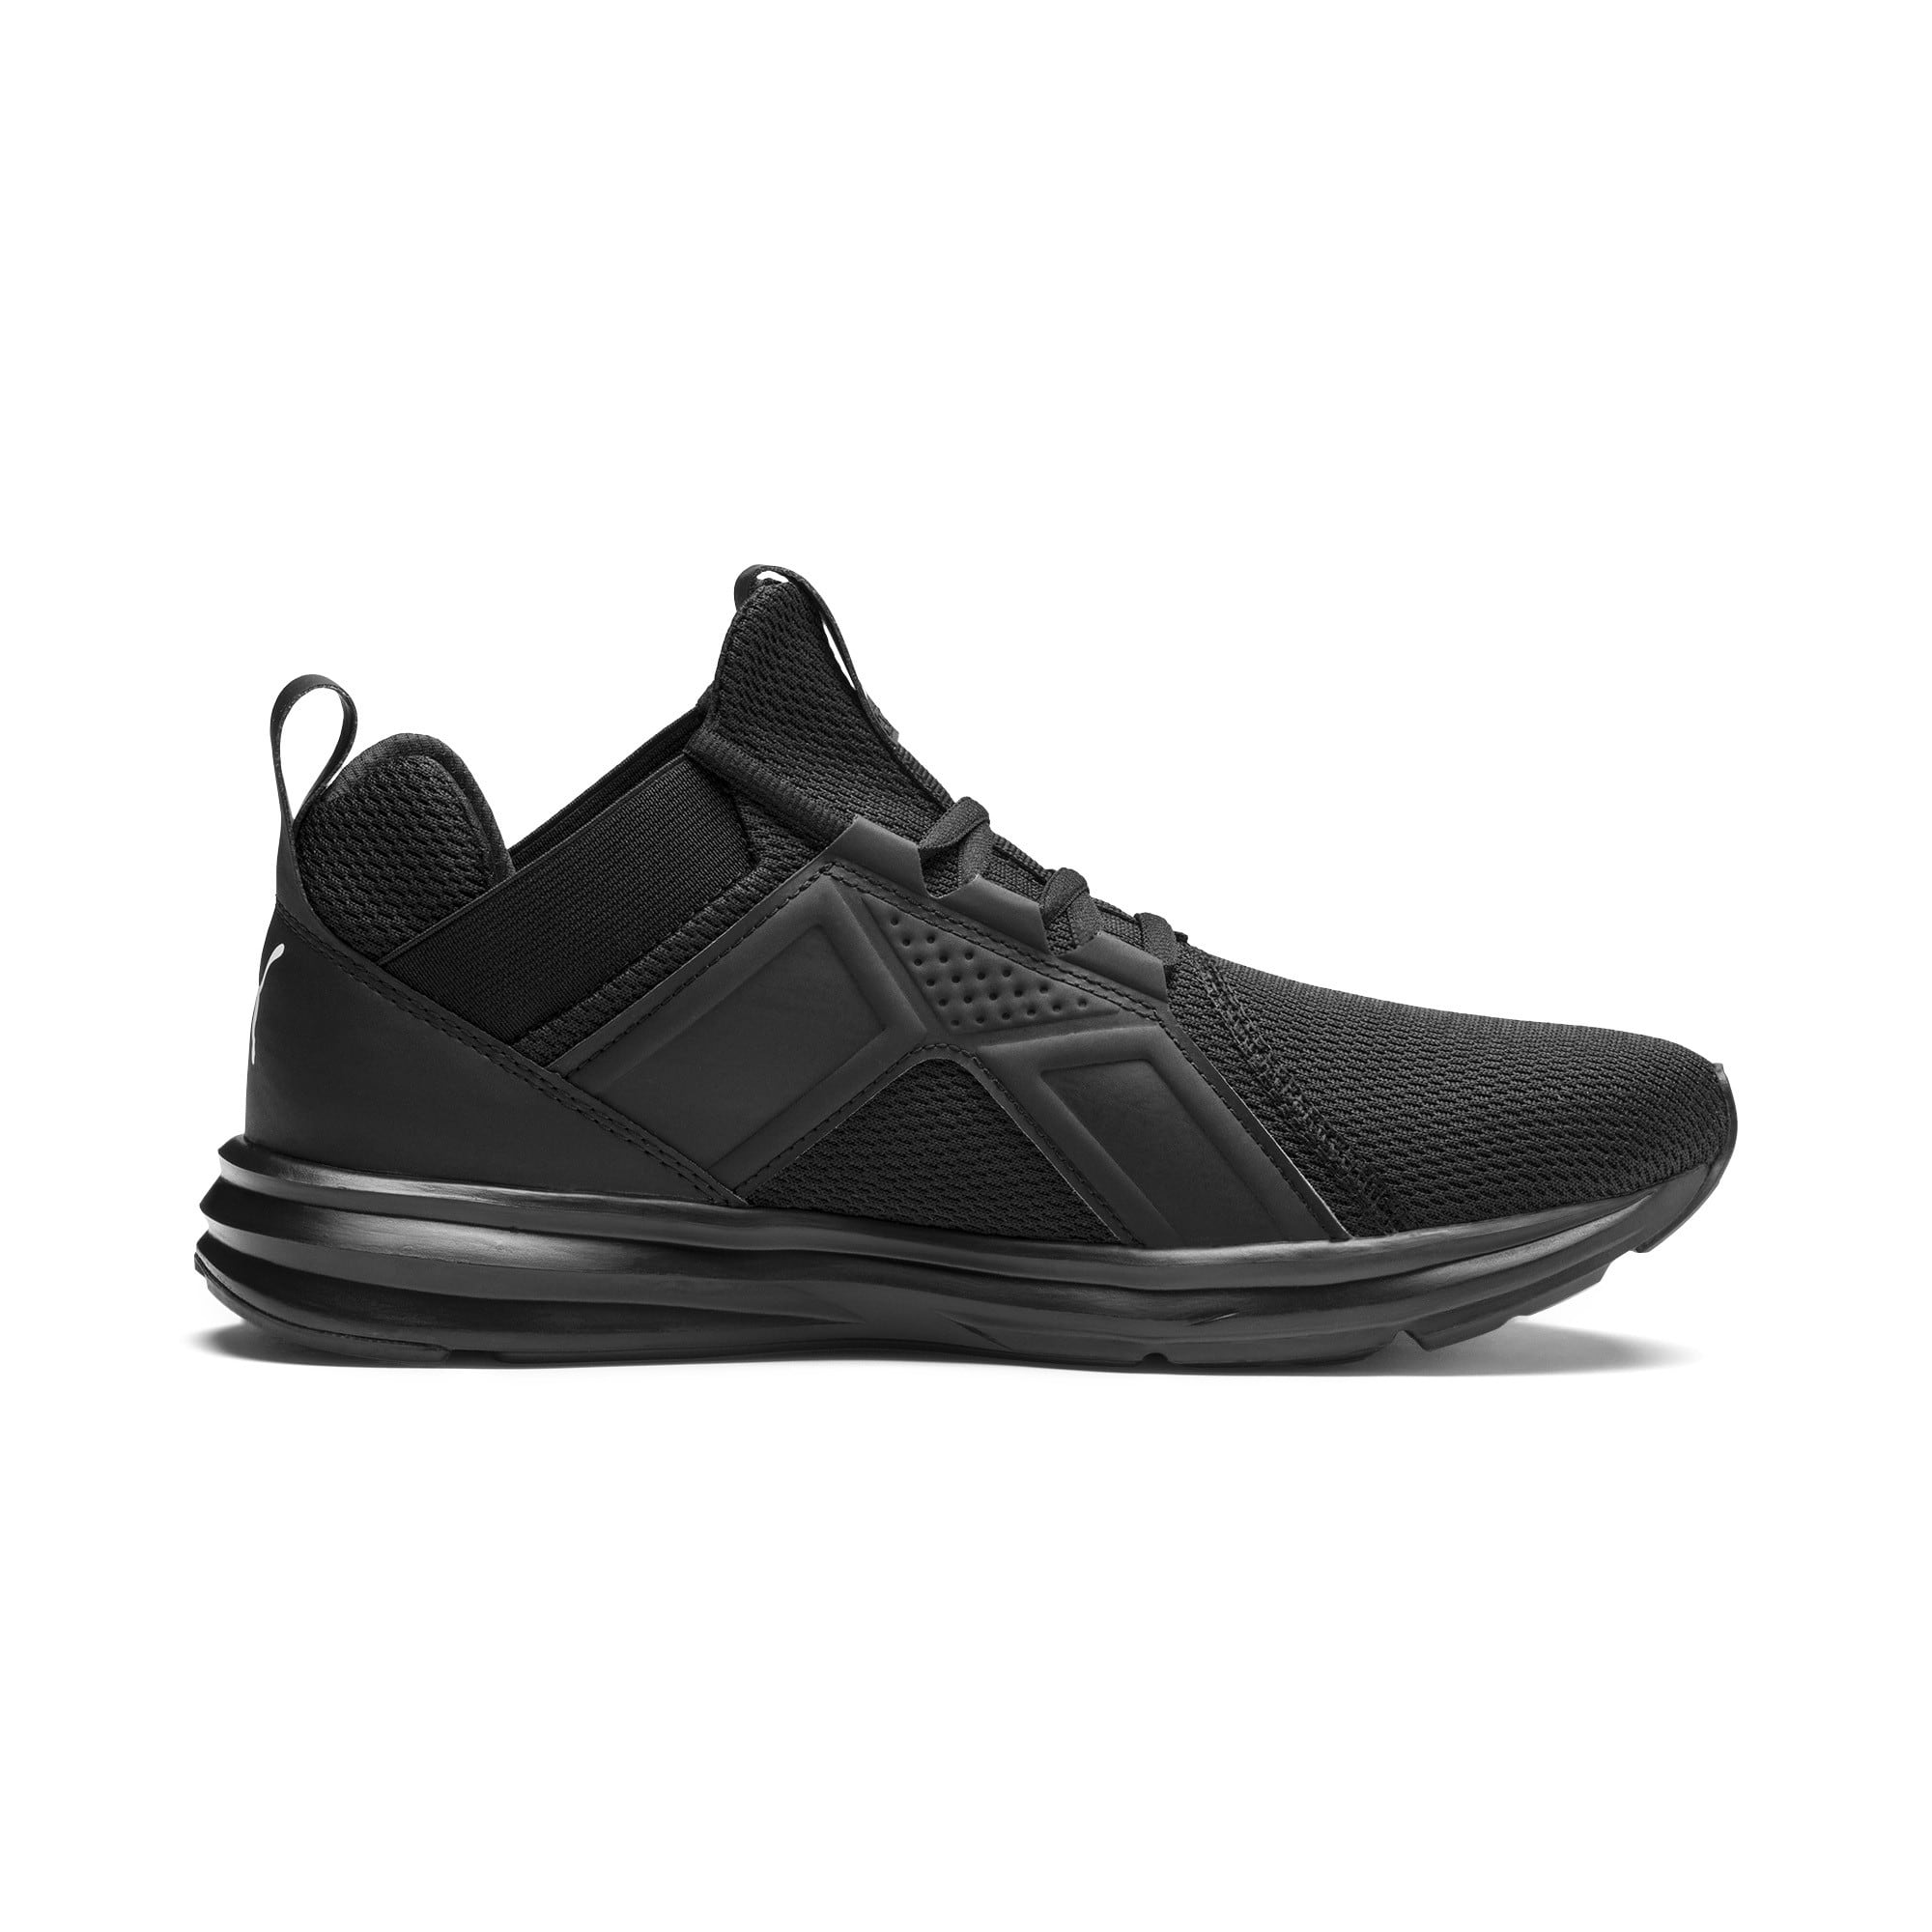 Thumbnail 6 of Enzo Sport Herren Sneaker, Puma Black-Puma Black, medium